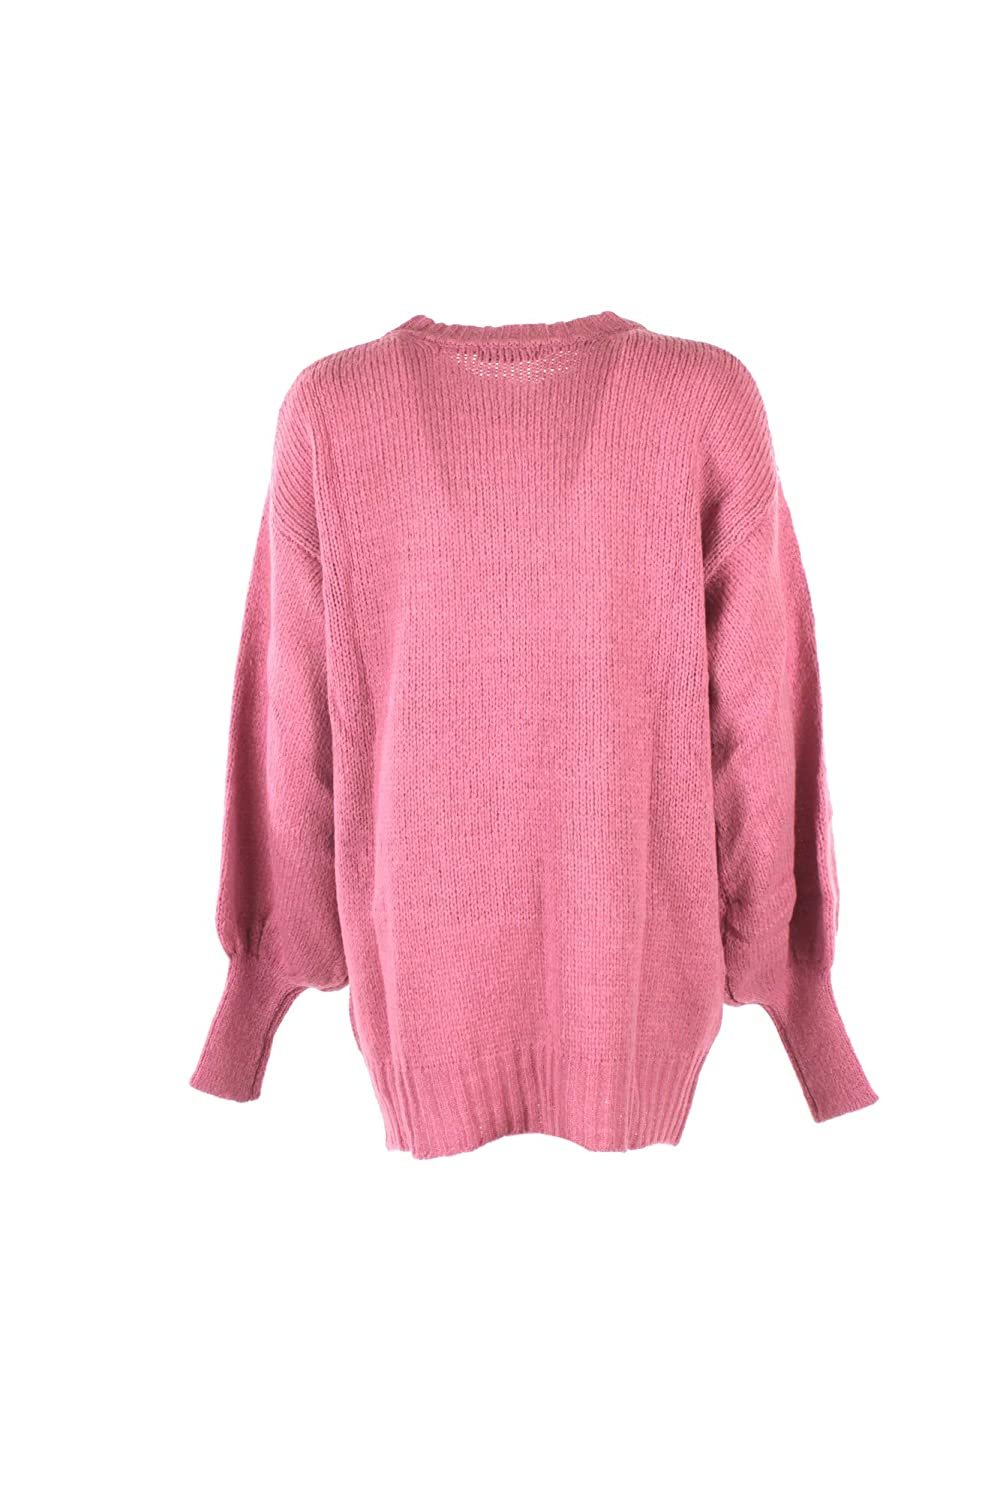 Rosa Maglia Donna At Shop 201819 Art Inverno M Autunno 18ish32918 EDHY2IeW9